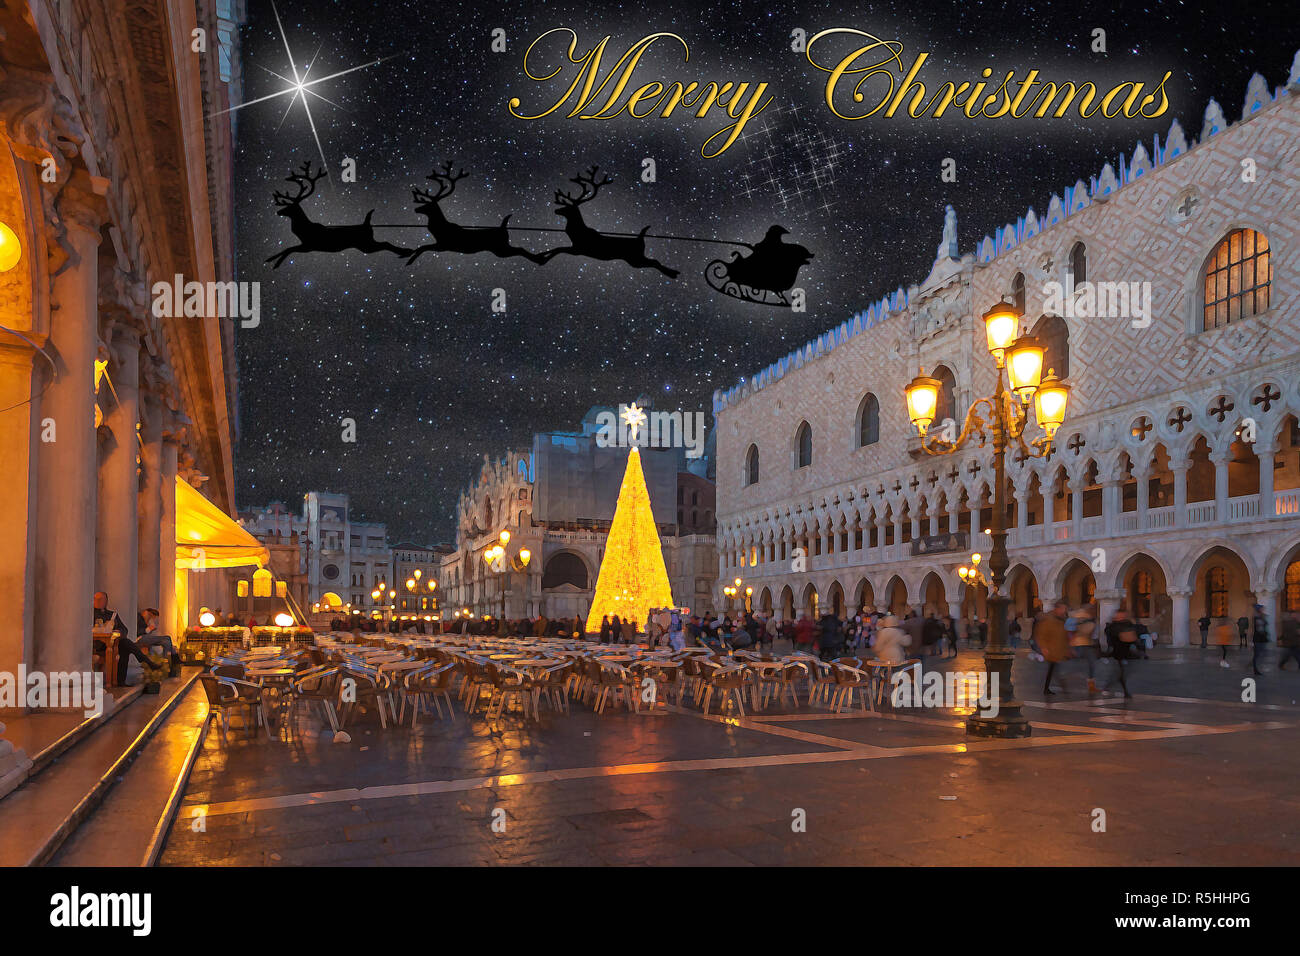 Christmas greetings card with Venice San Marco Square abstract background and Santa Klaus with reindeer in the sky Stock Photo